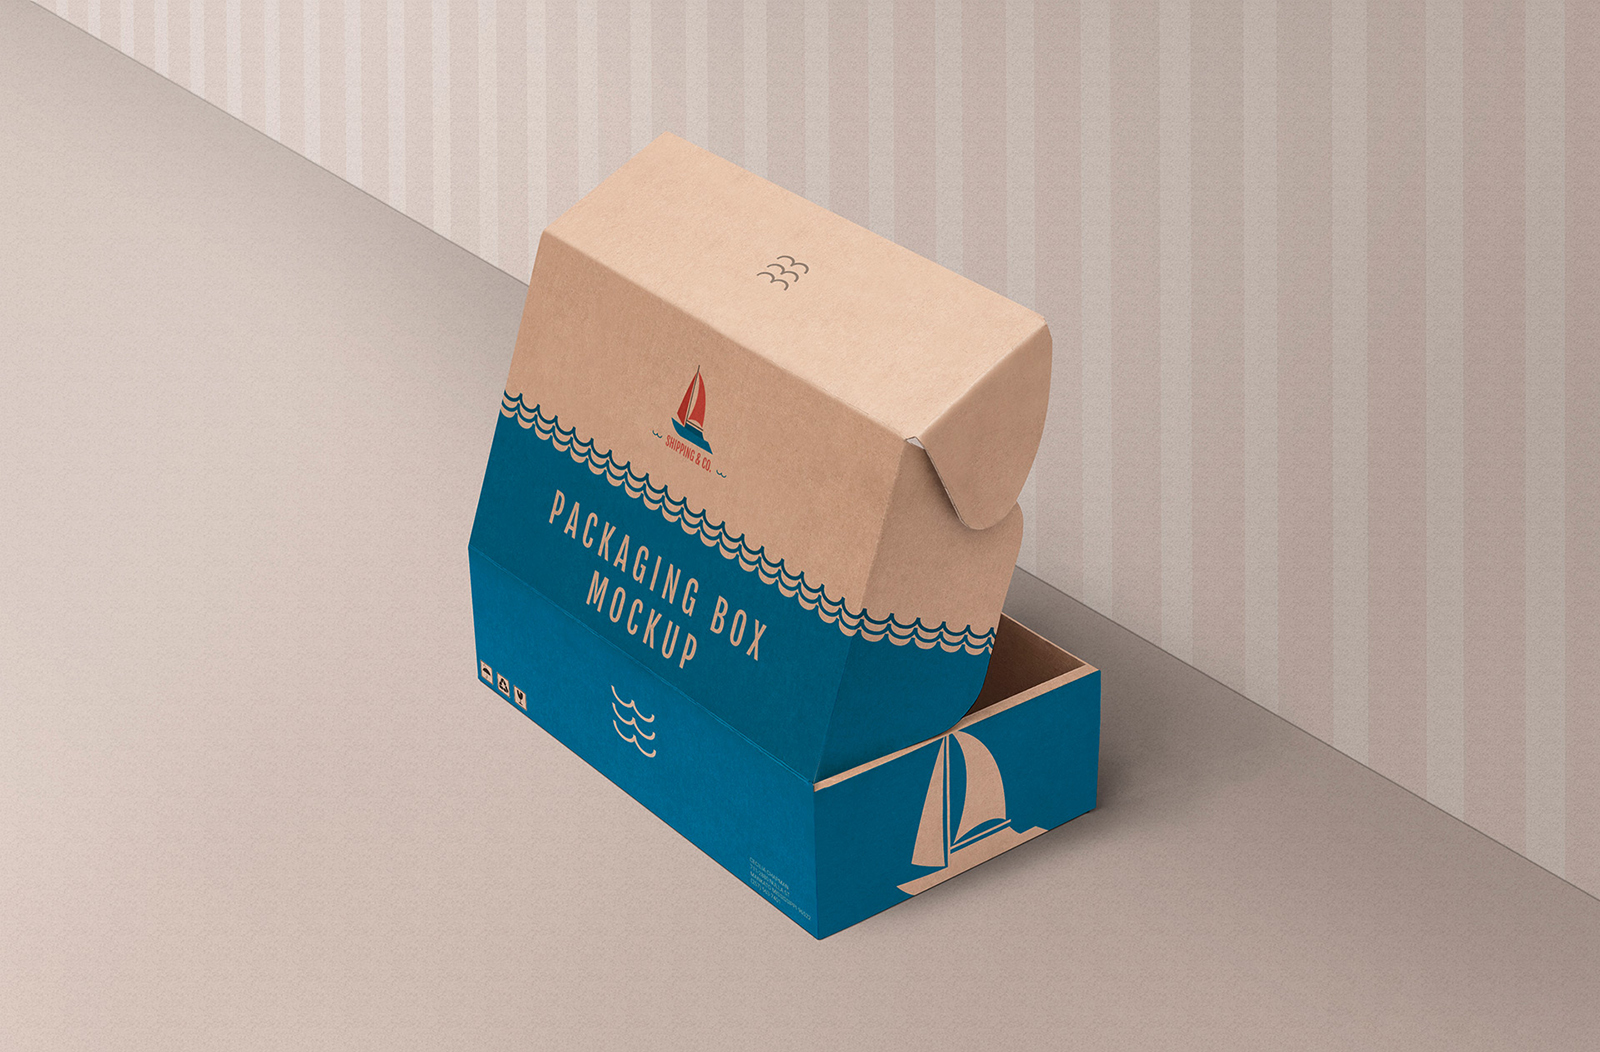 2221+ Free Box Mockup Download Photoshop File